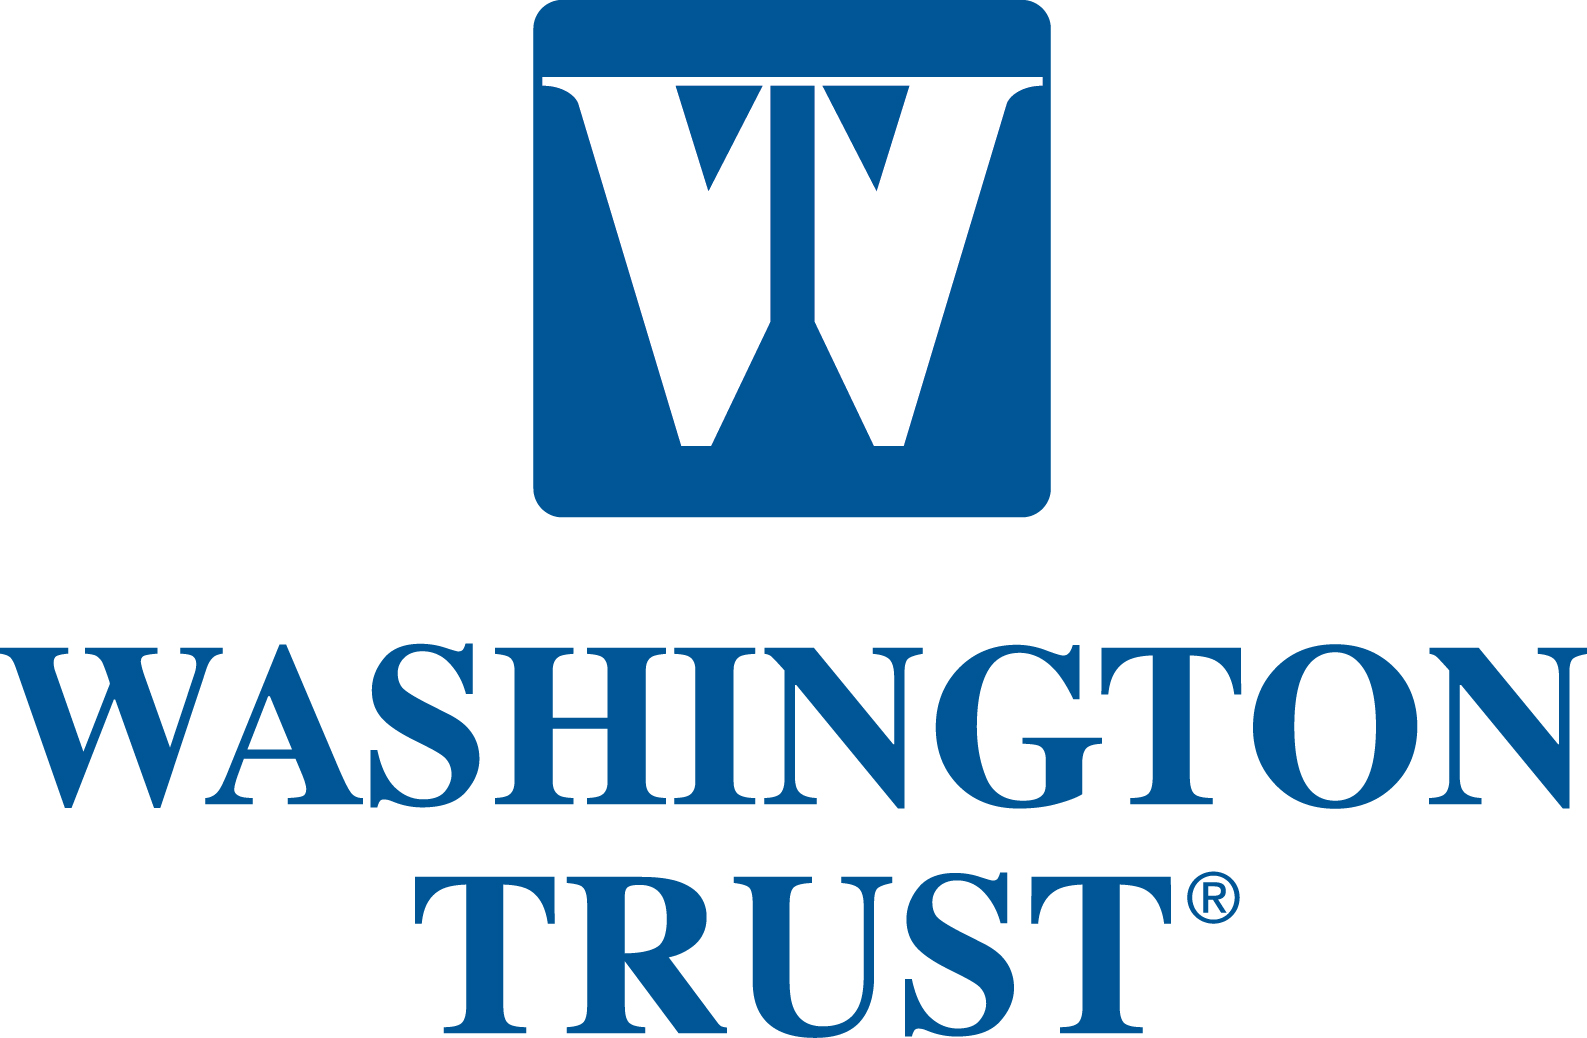 Wash-Trust-Logo-CC2019.jpg